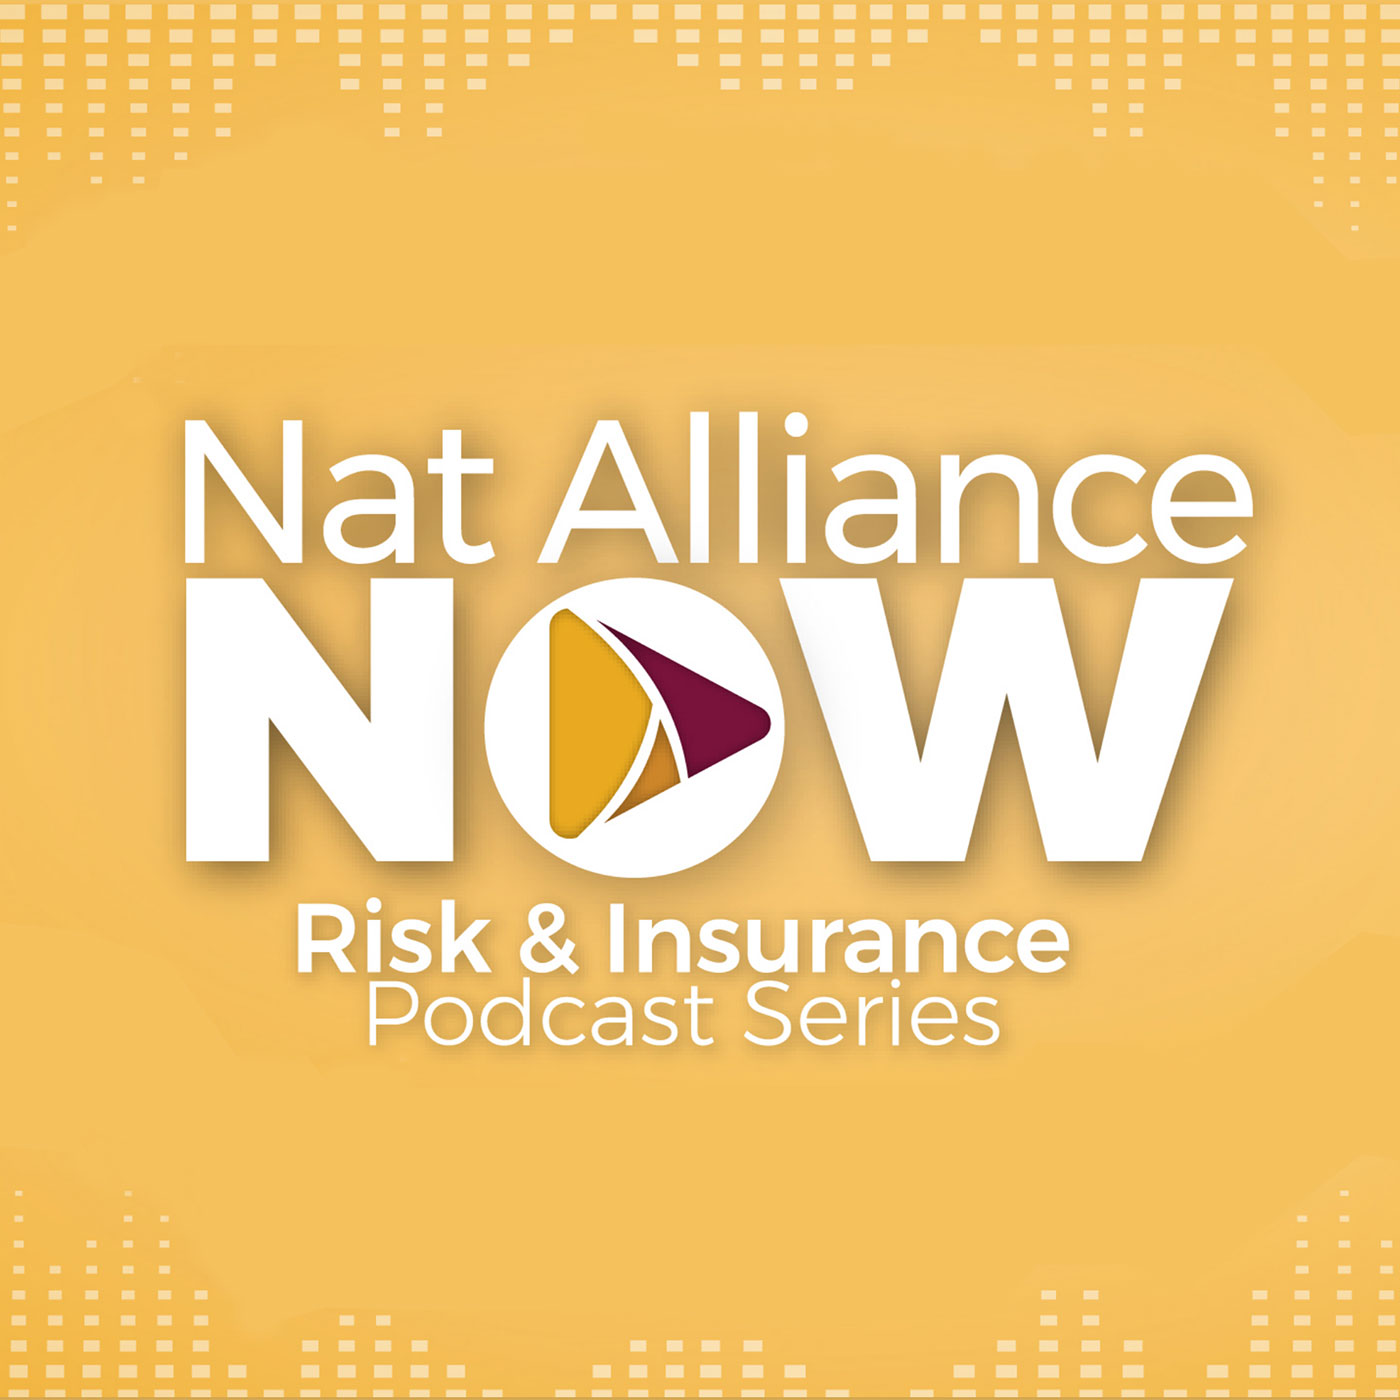 Nat Alliance NOW Risk & Insurance Podcast